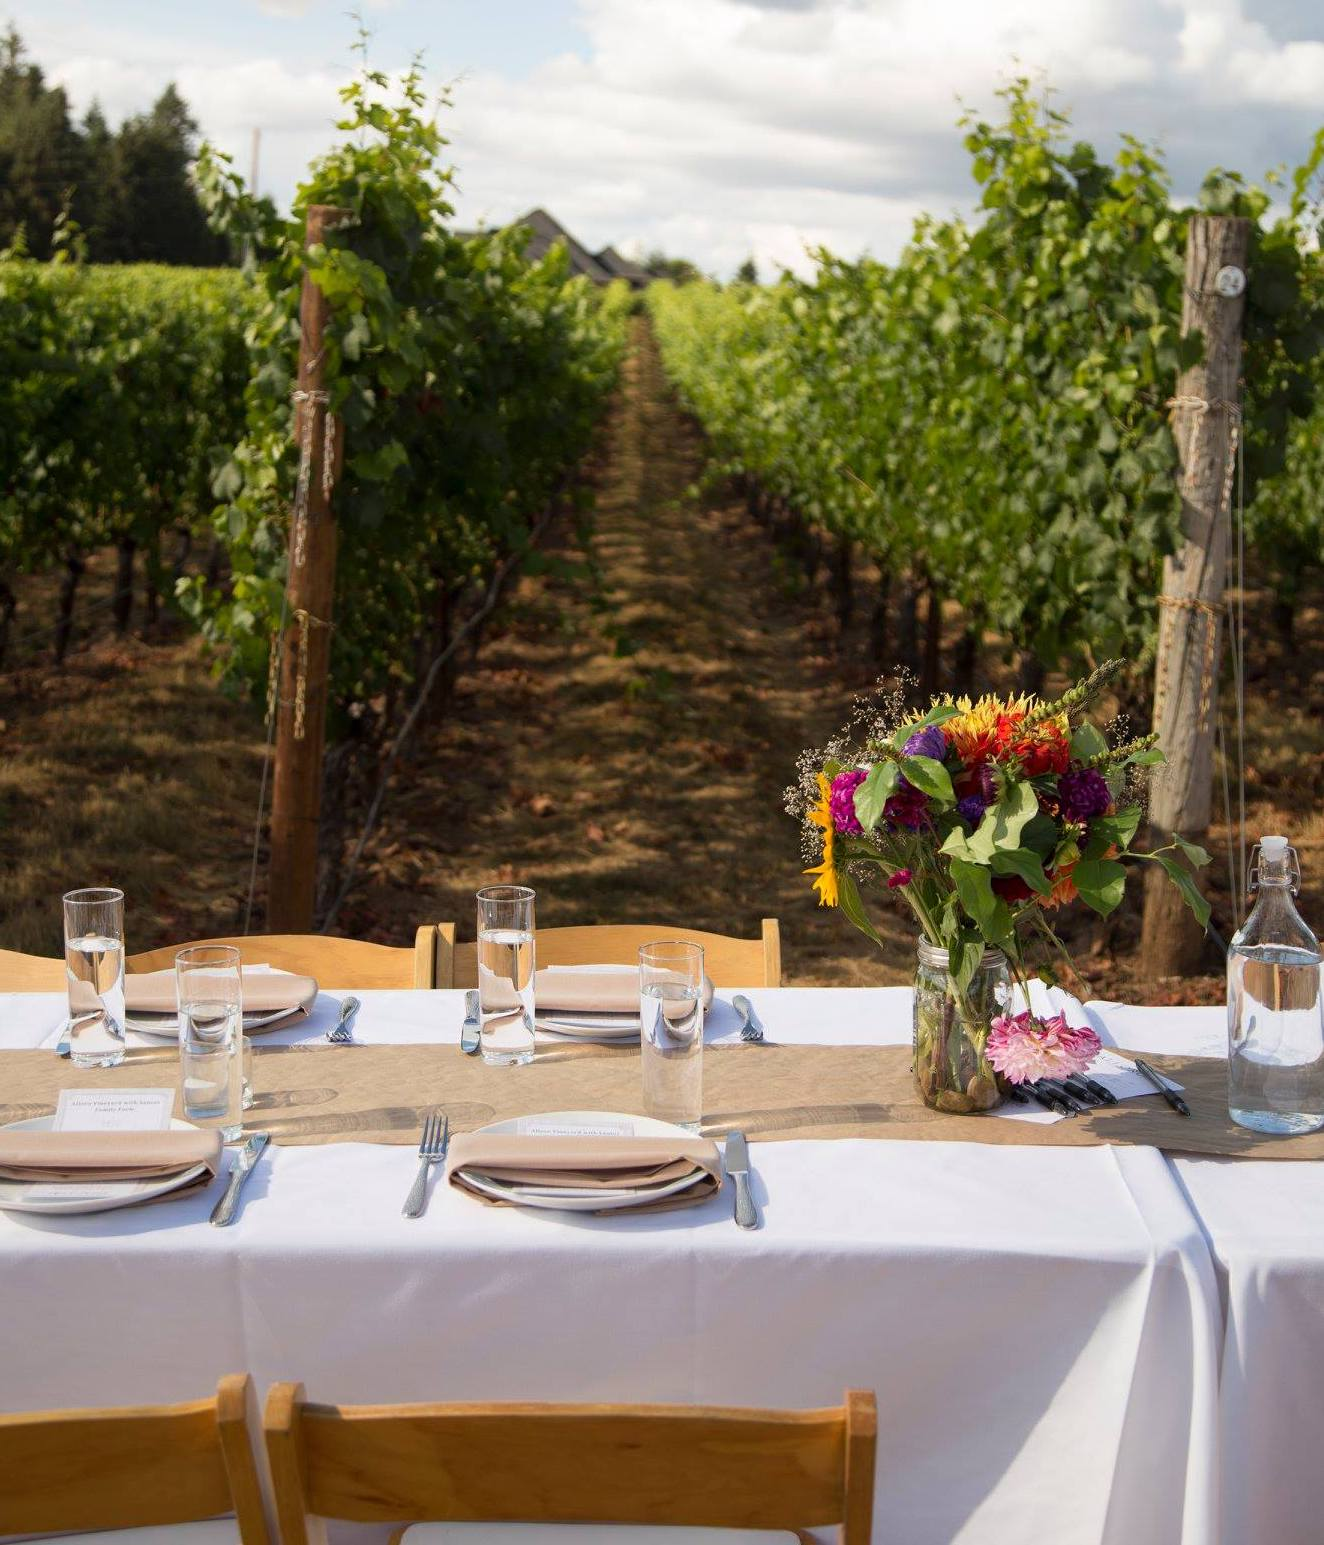 image of field and vine table in vineyard